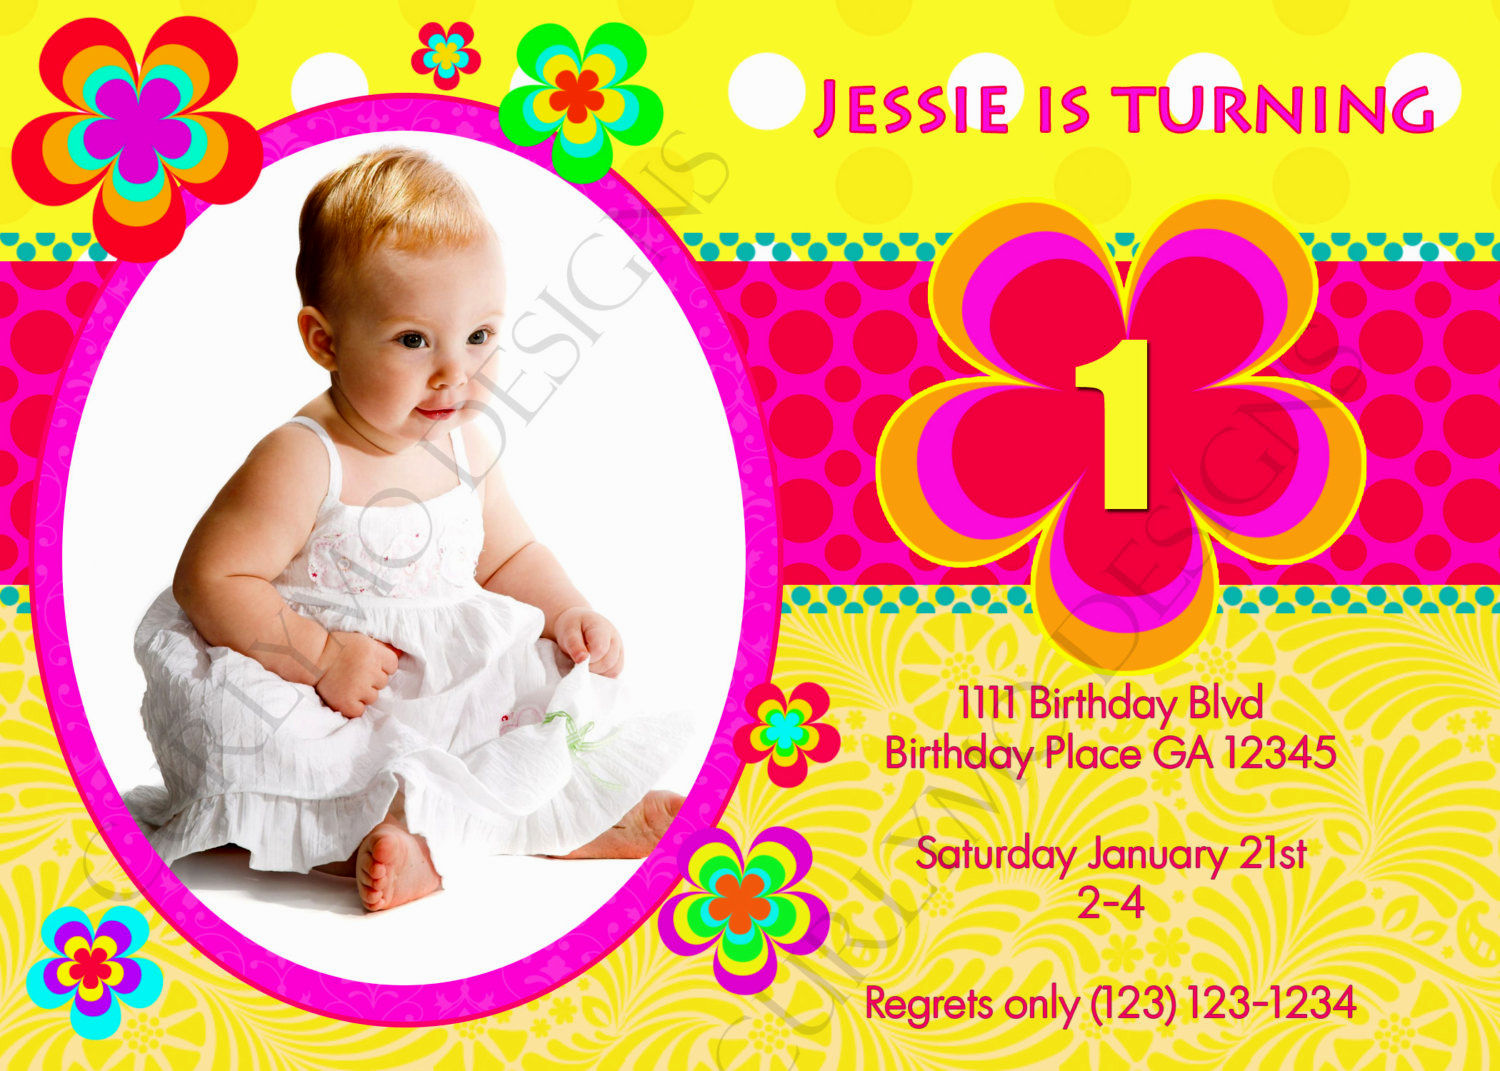 birthday invitation card template photoshop free ; simple-creation-birthday-invitation-card-design-perfect-finishing-concept-yellow-color-pink-ribbon-real-photo-picture-baby